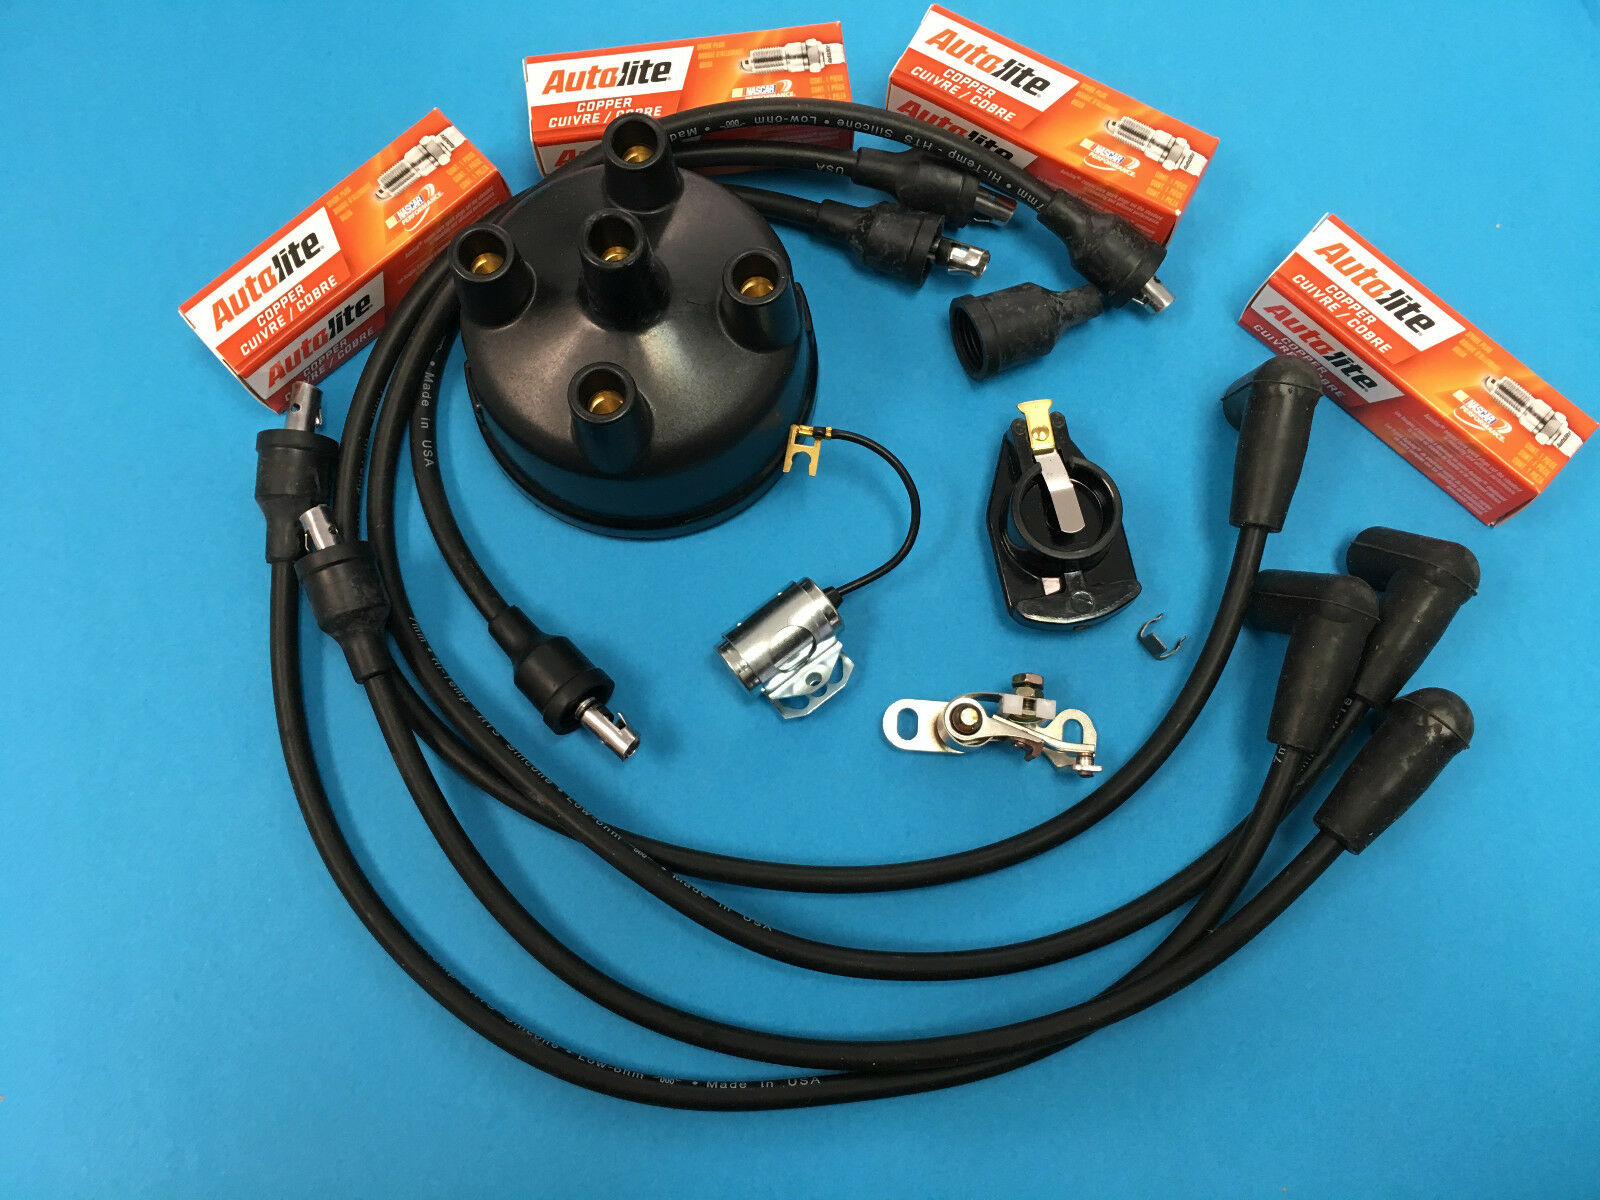 Ford NAA 600 601 800 801 900 Tractor Tune Up Kit Wires Plugs Points Cap  Rotor 1 of 1 See More